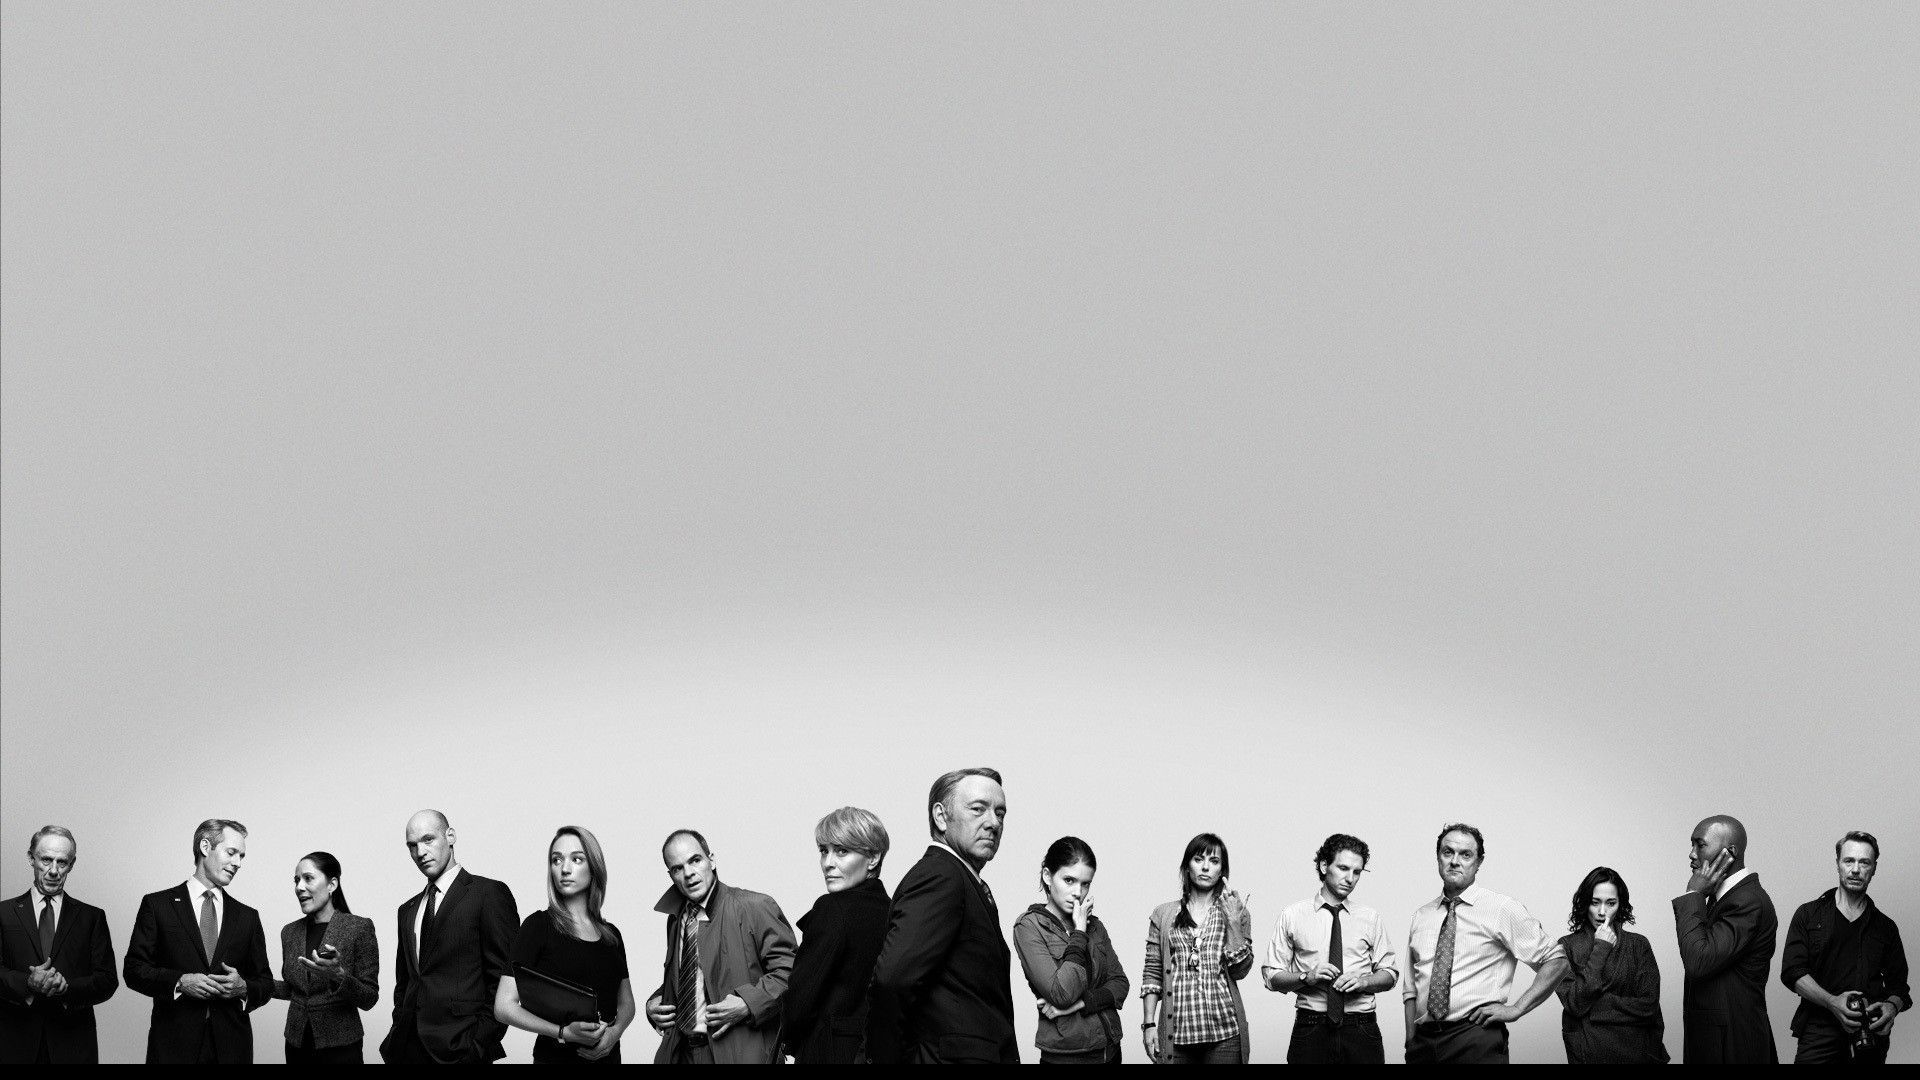 House Of Cards Mobile Iphone Wallpaper Suit Tie 1920x1080